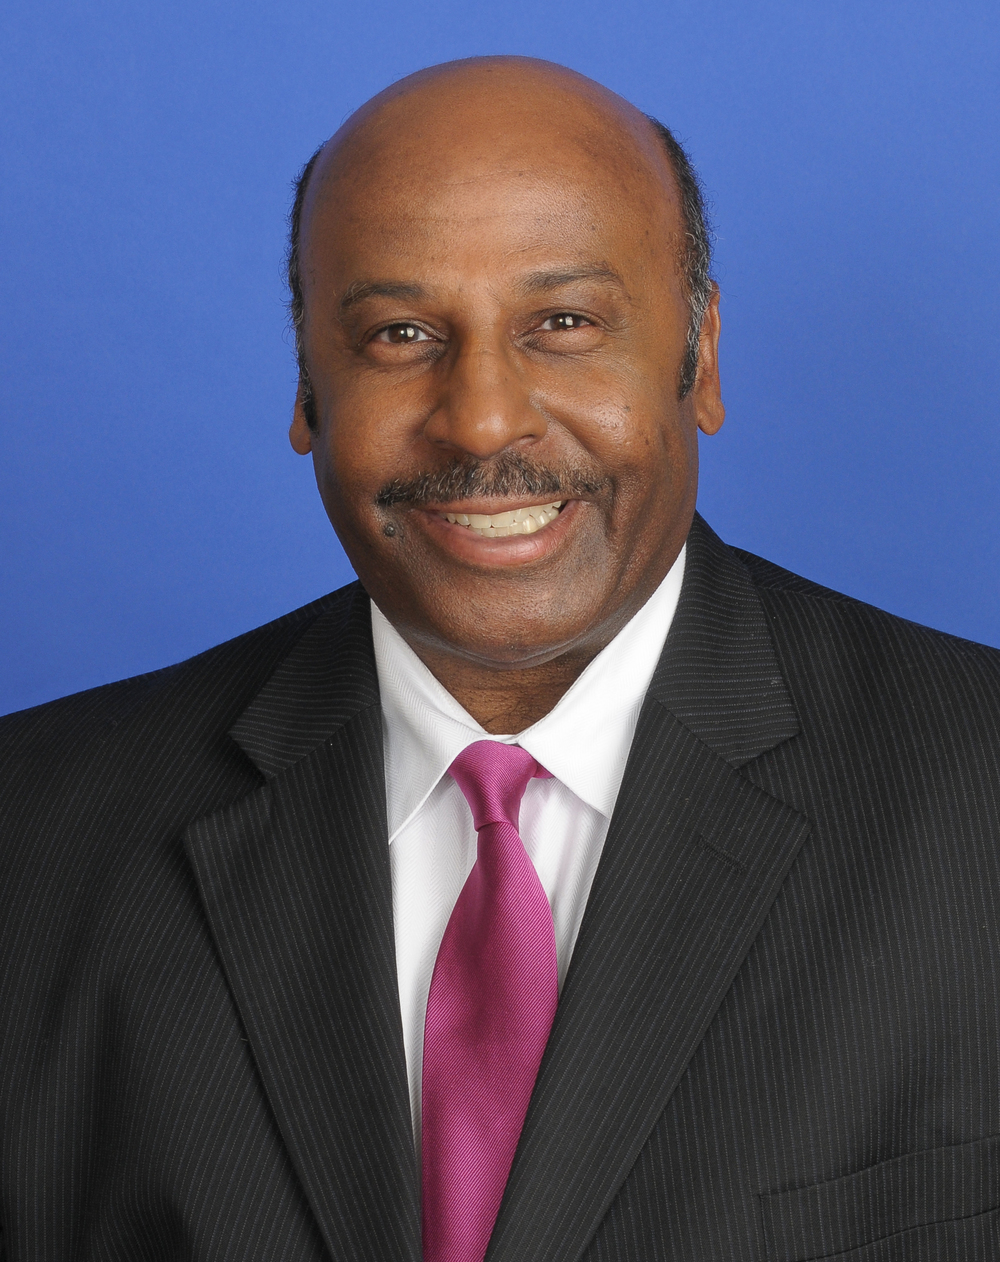 Edward A. Hailes, Jr., General Counsel/Managing Director, Advancement Project